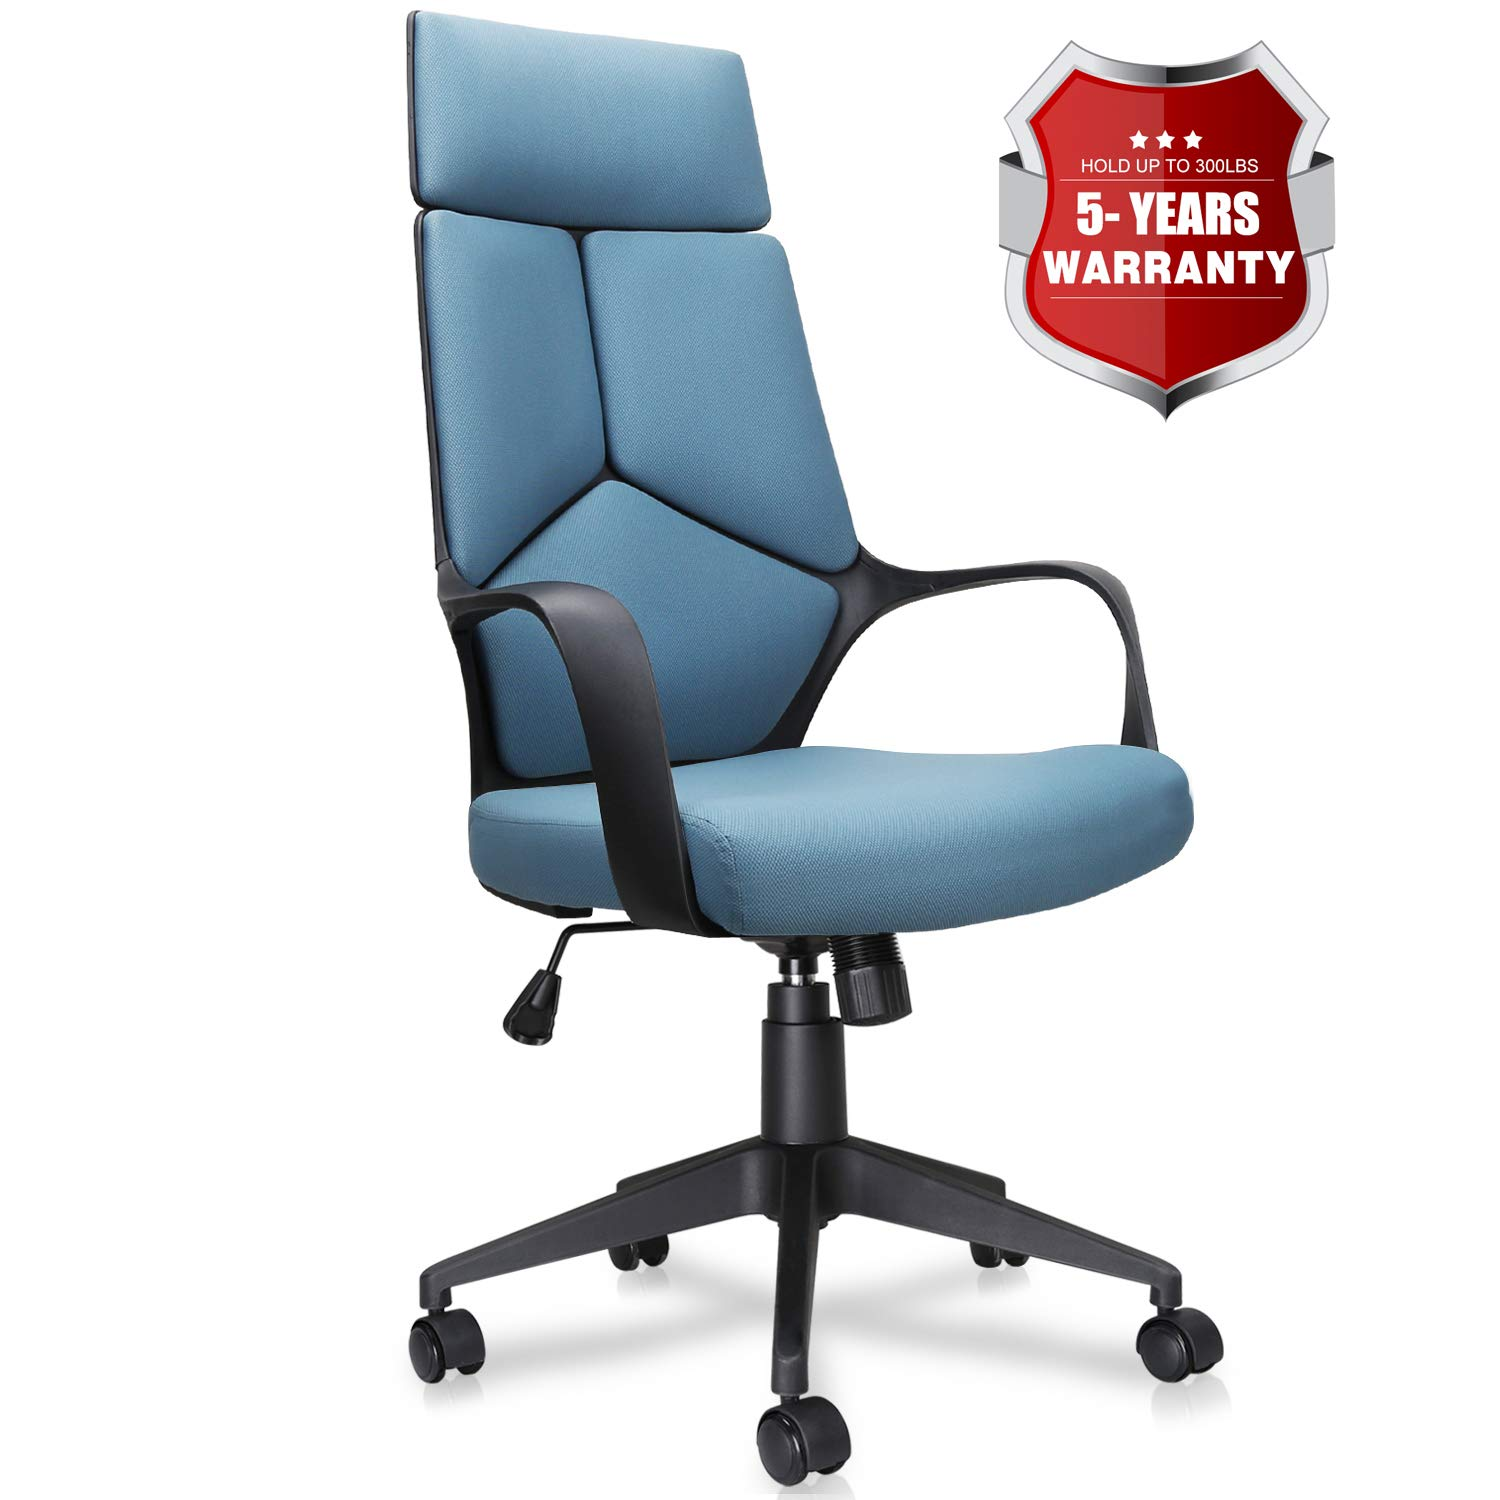 Becozier Mordern Office Chair, High Back Computer Desk Chairs Task Chairs with Detachable Headrest, Adjustable Height, Mesh Cushion for Home and Office Conference Room (Unique Design: Blue)